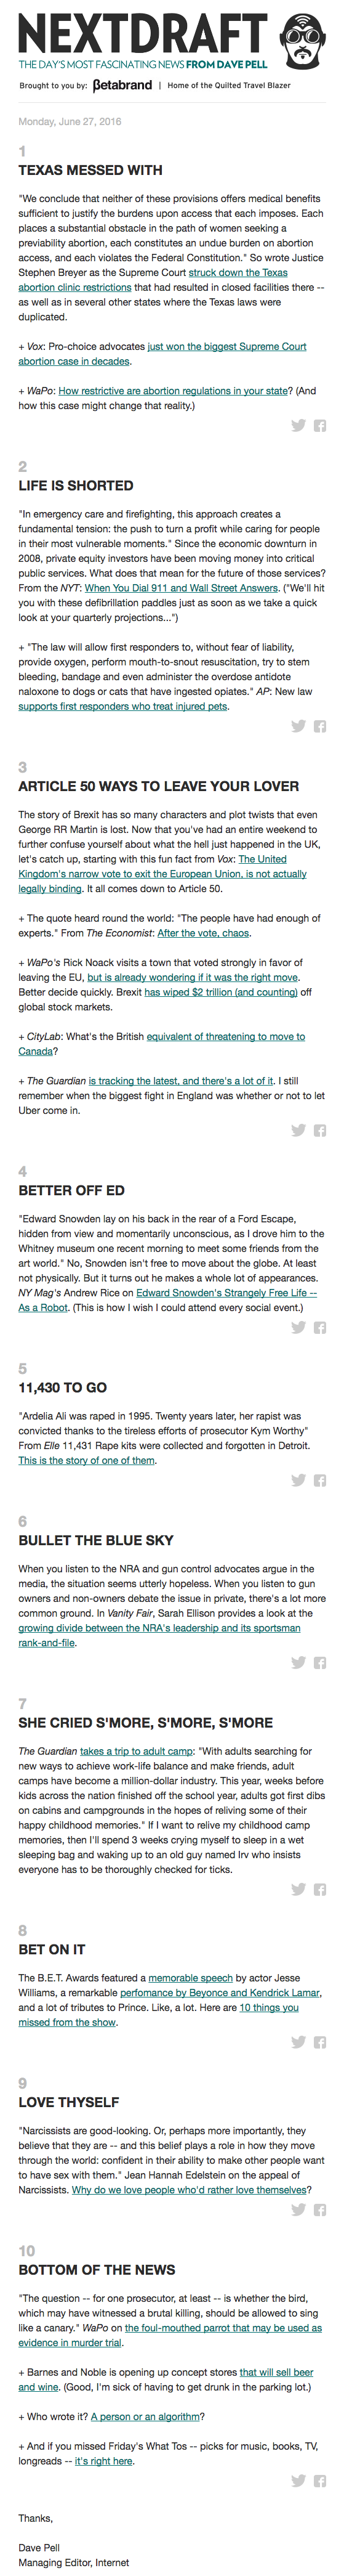 Email Newsletter Examples We Love Getting In Our Inboxes